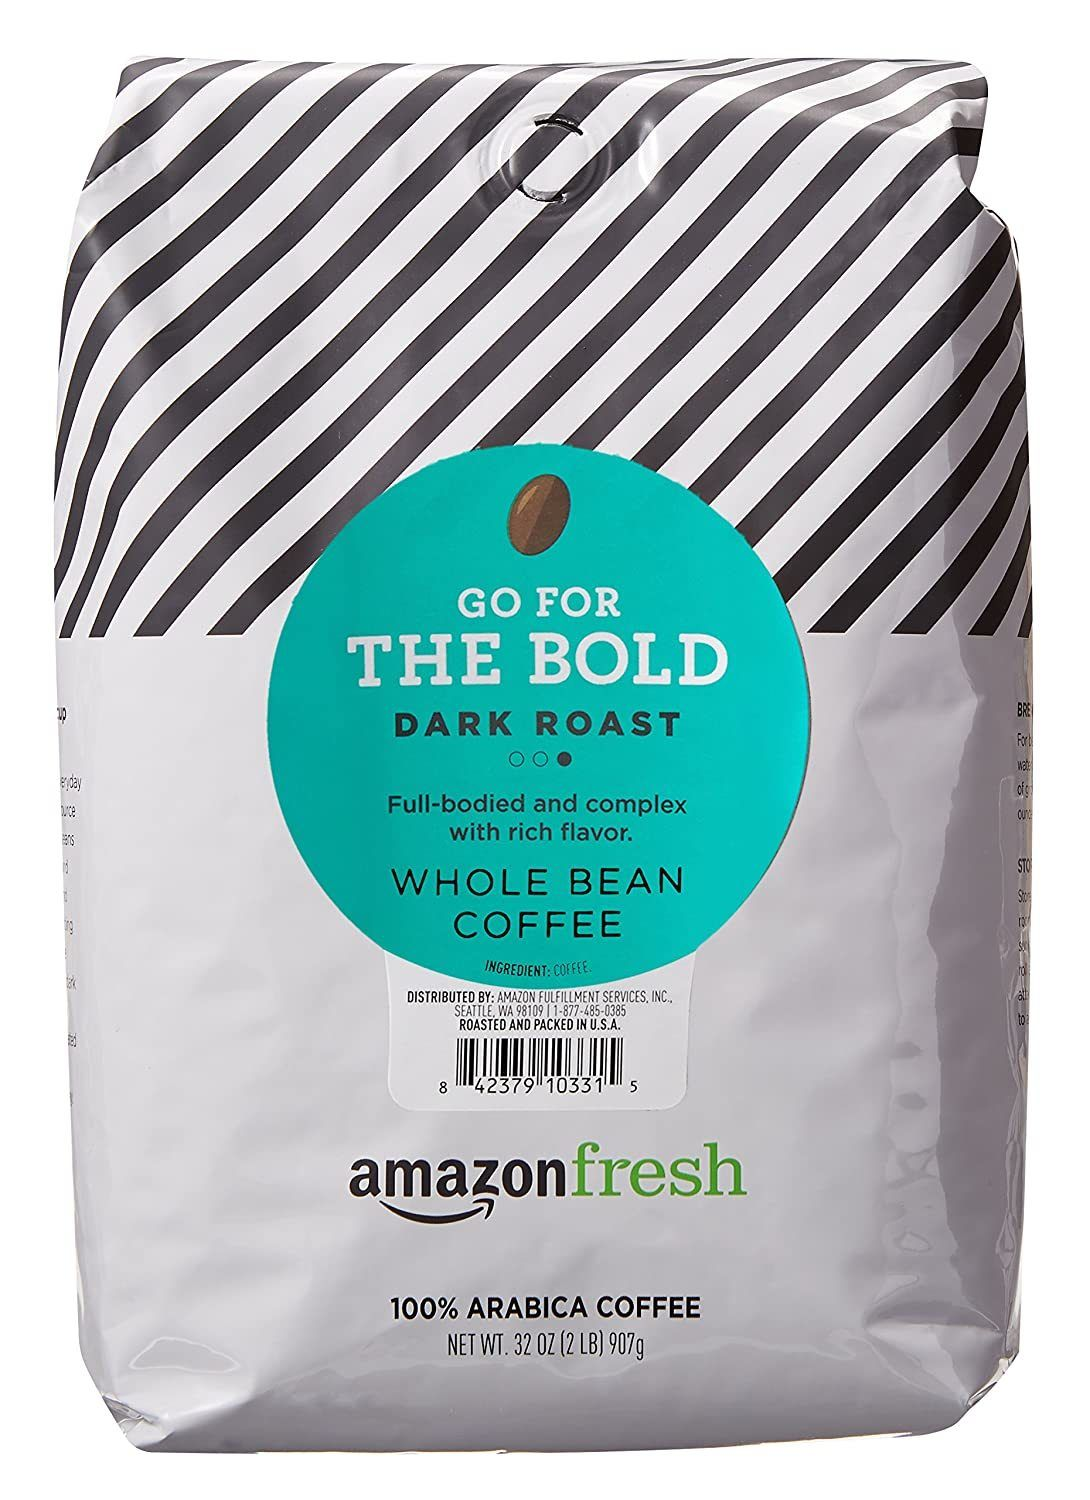 Dark Roast Whole Bean Coffee